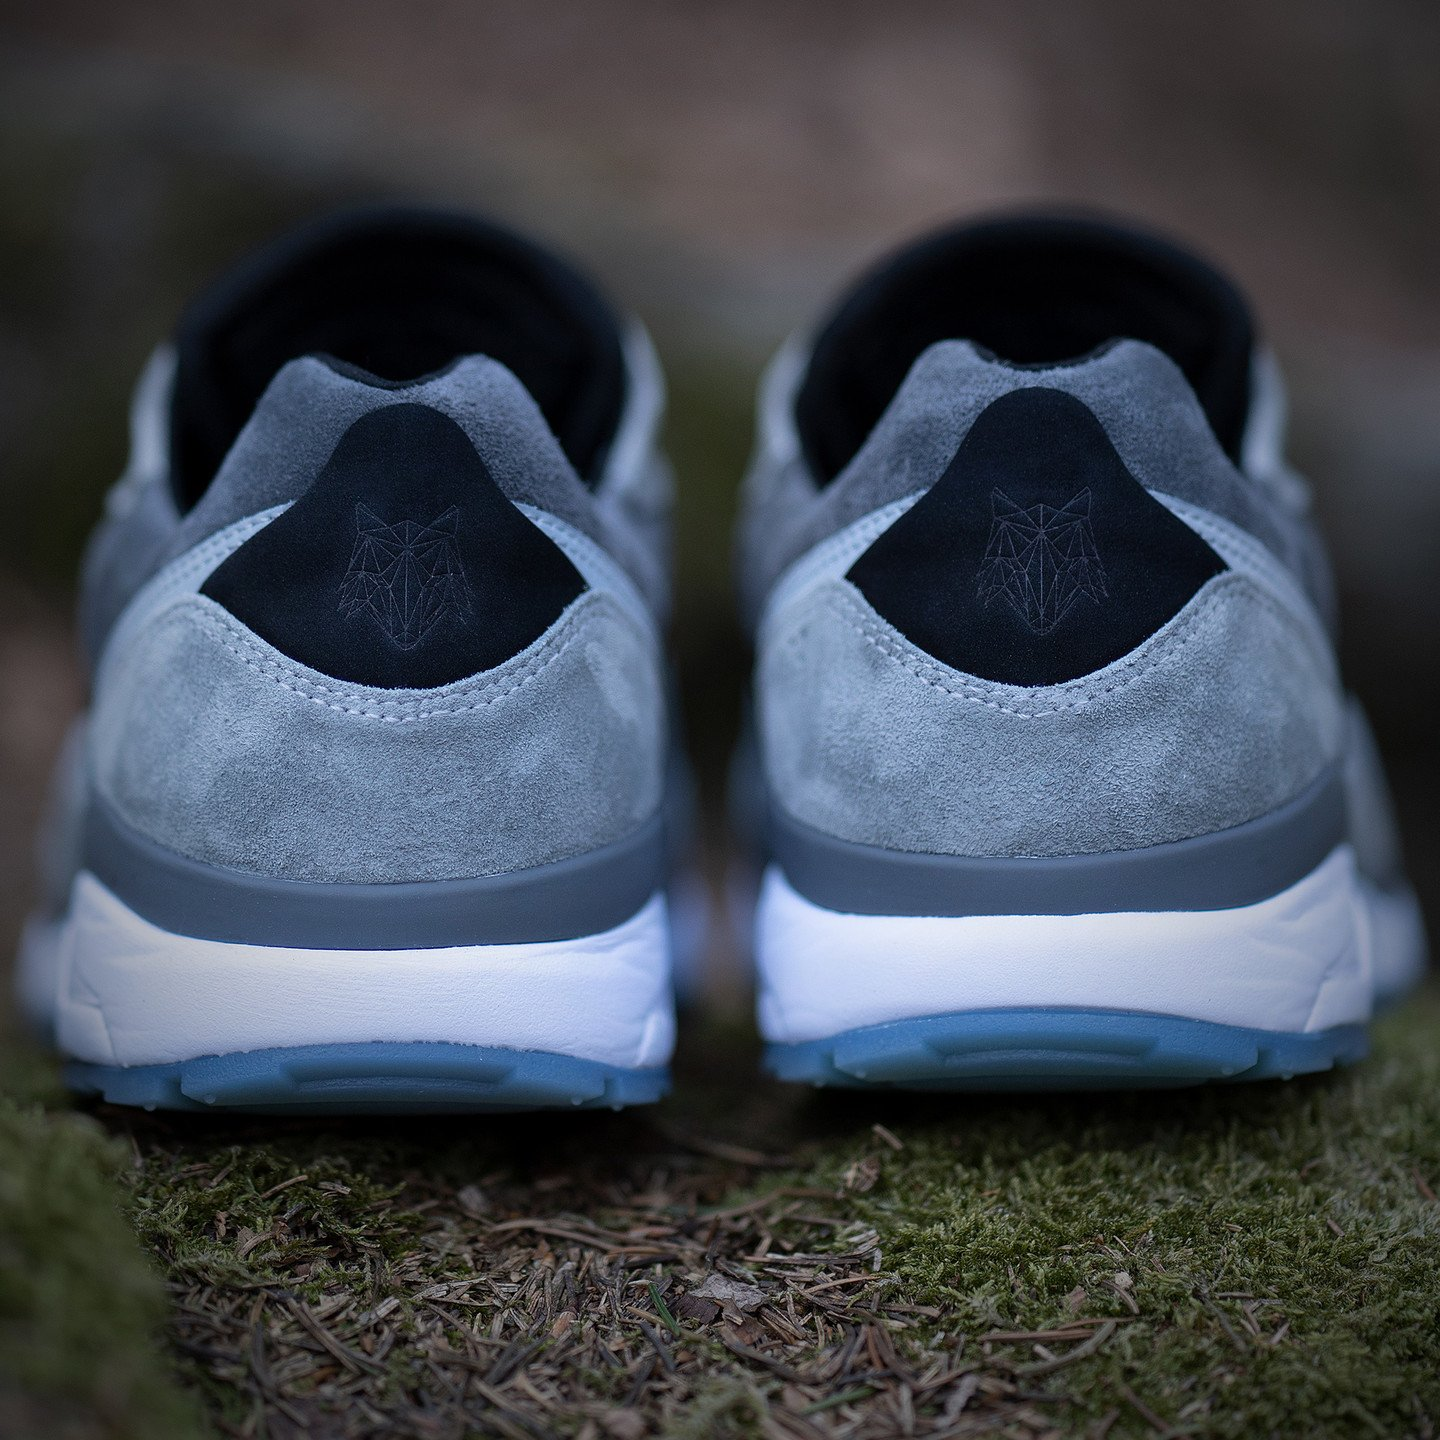 KangaROOS Runaway x 43einhalb 'Lupus' - Made in Germany Steel Grey /Vapor Grey 4720L-2009